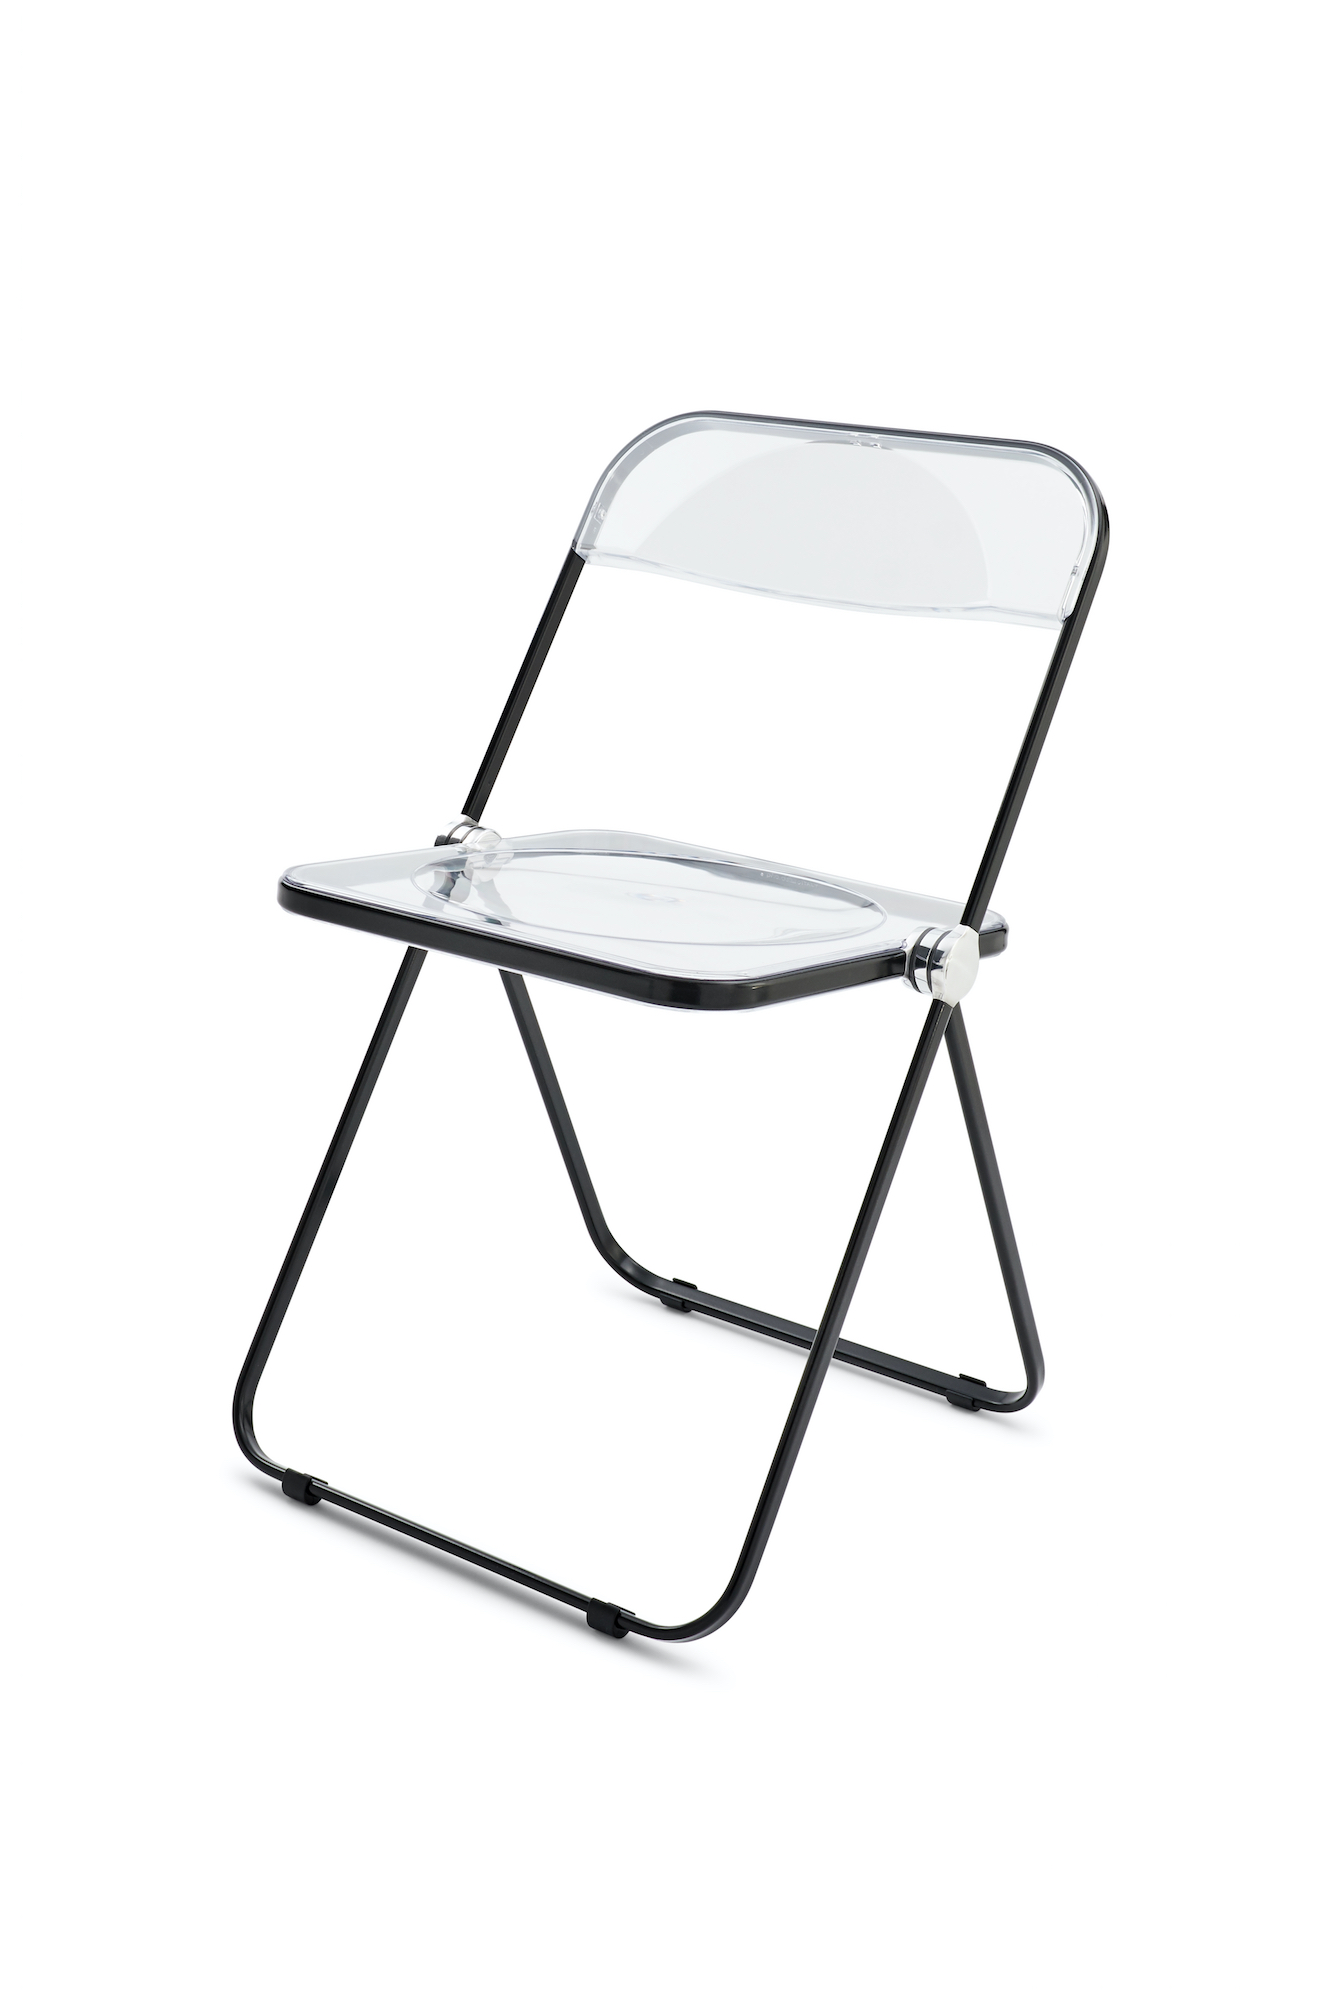 Castelli Folding chair PLIA, black